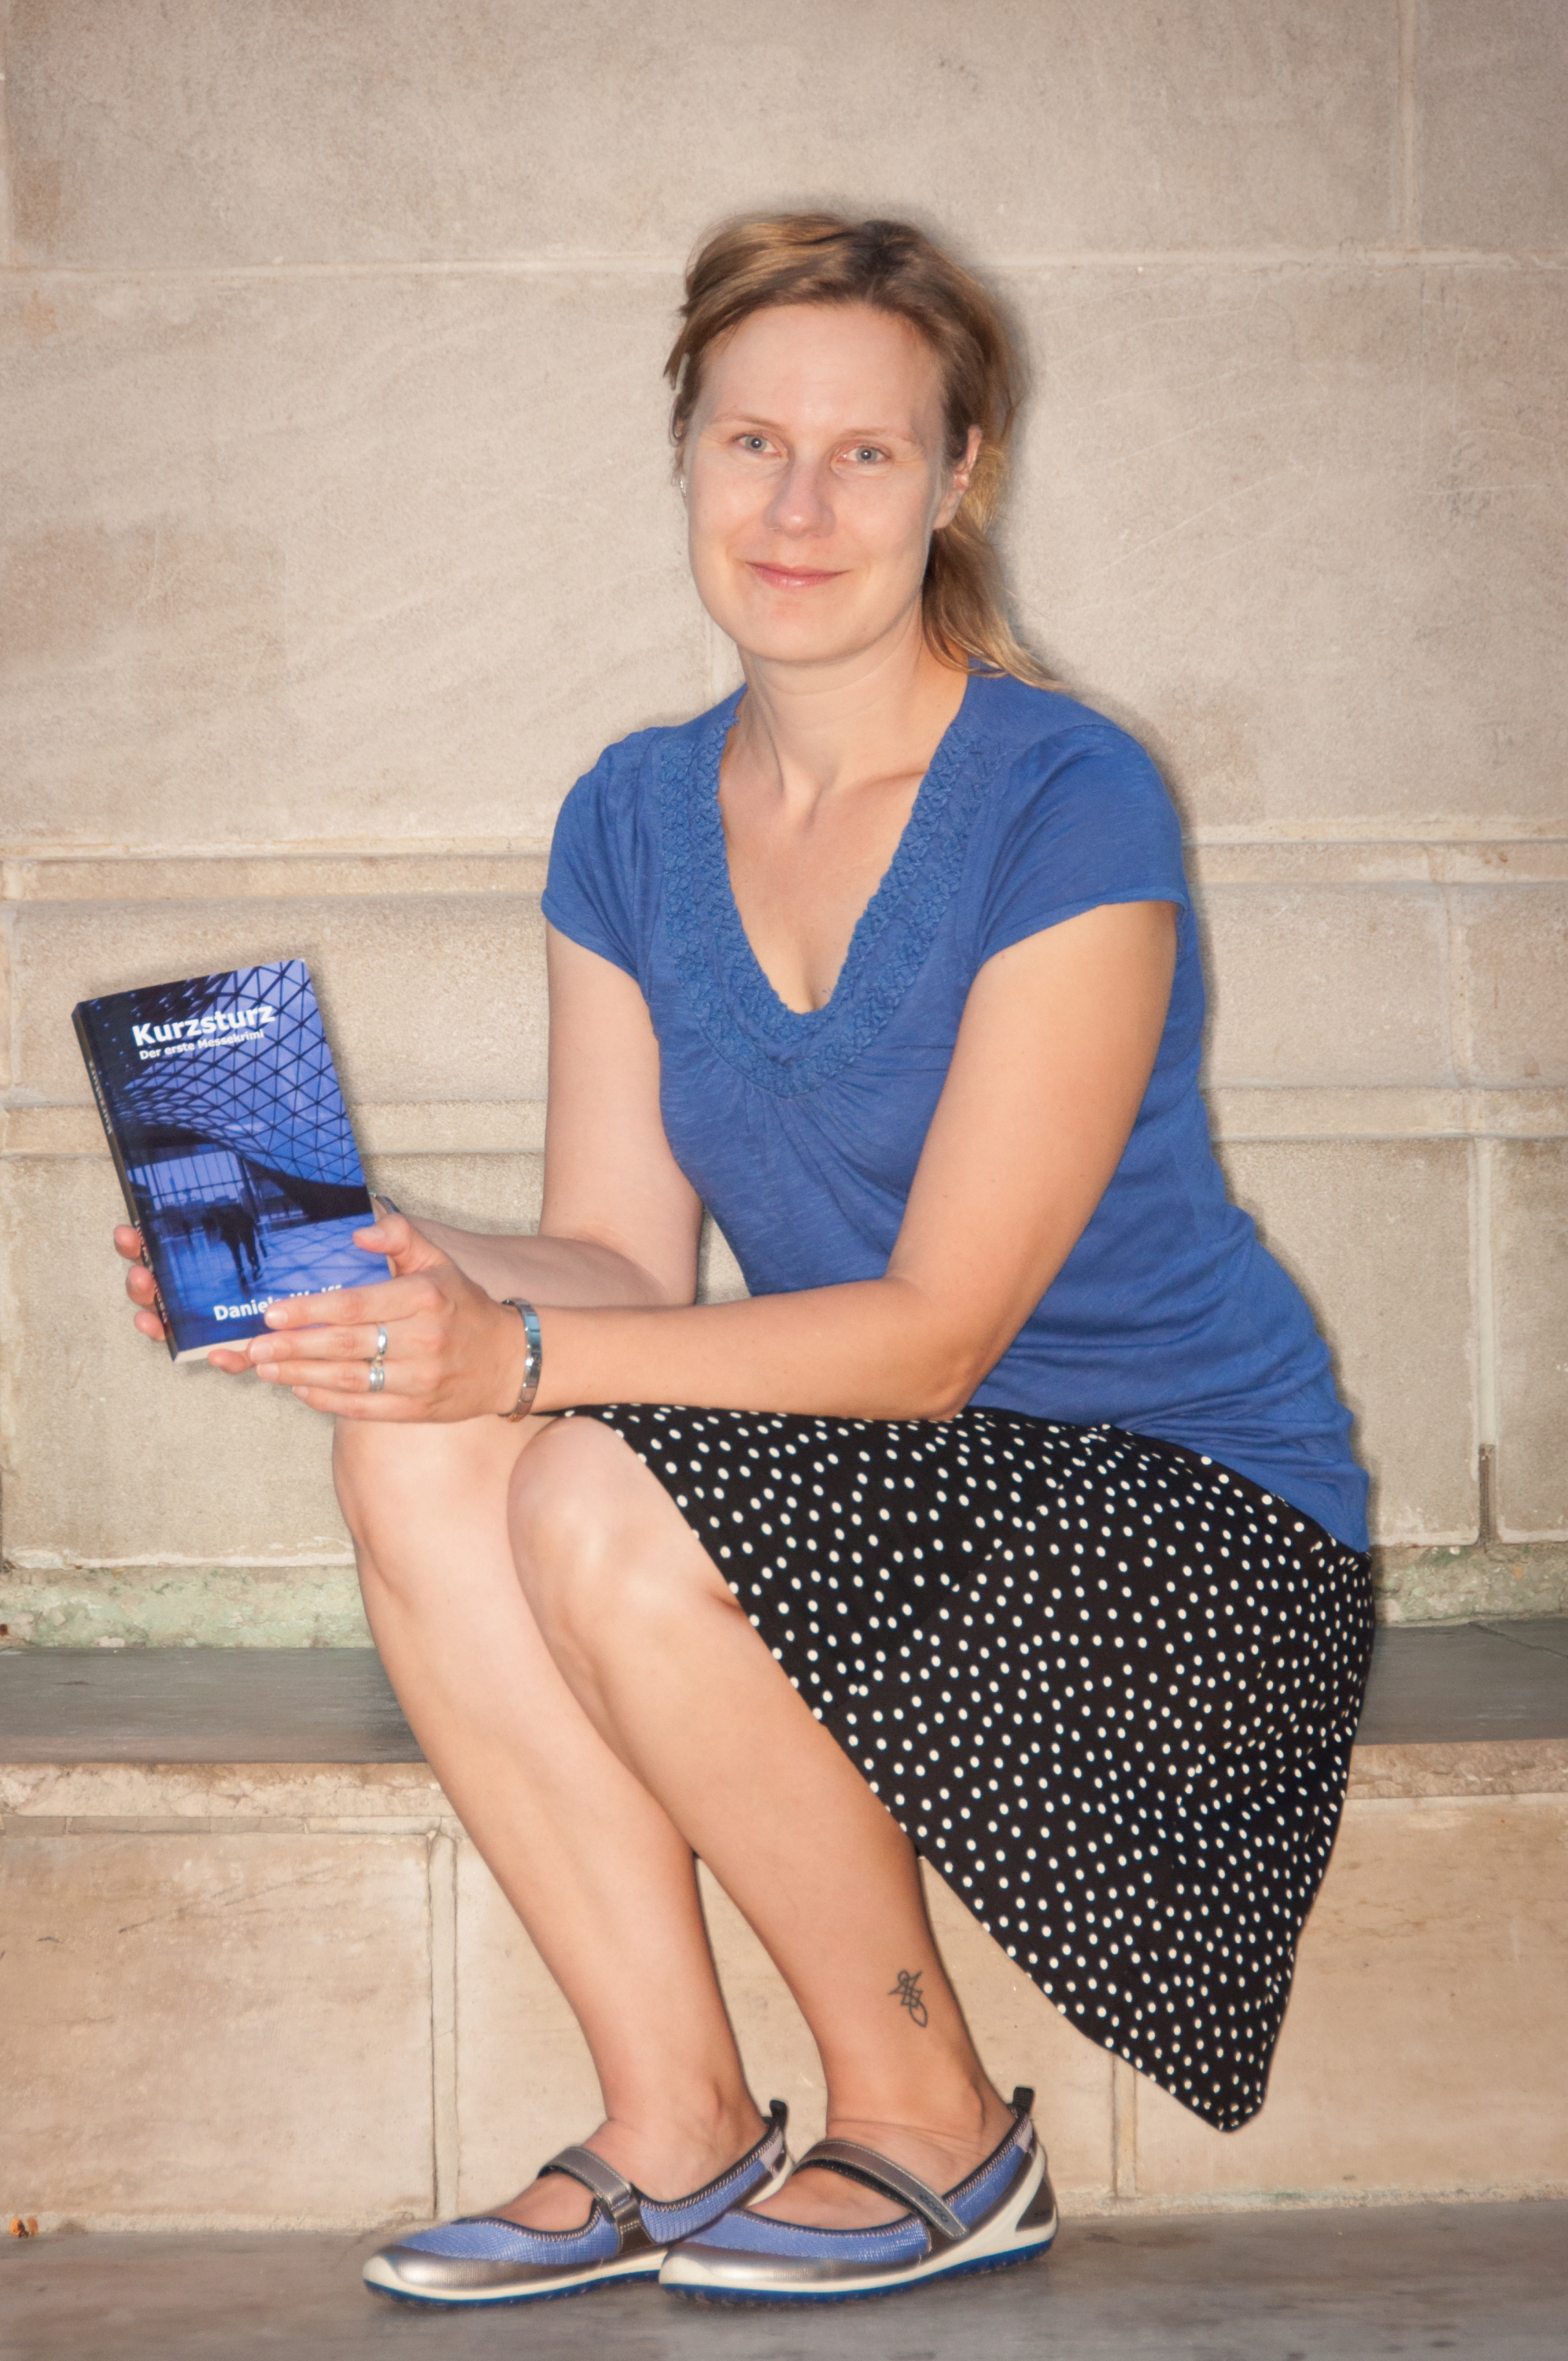 Photo of Daniela Wolff, the author of the German novel Kurzsturz